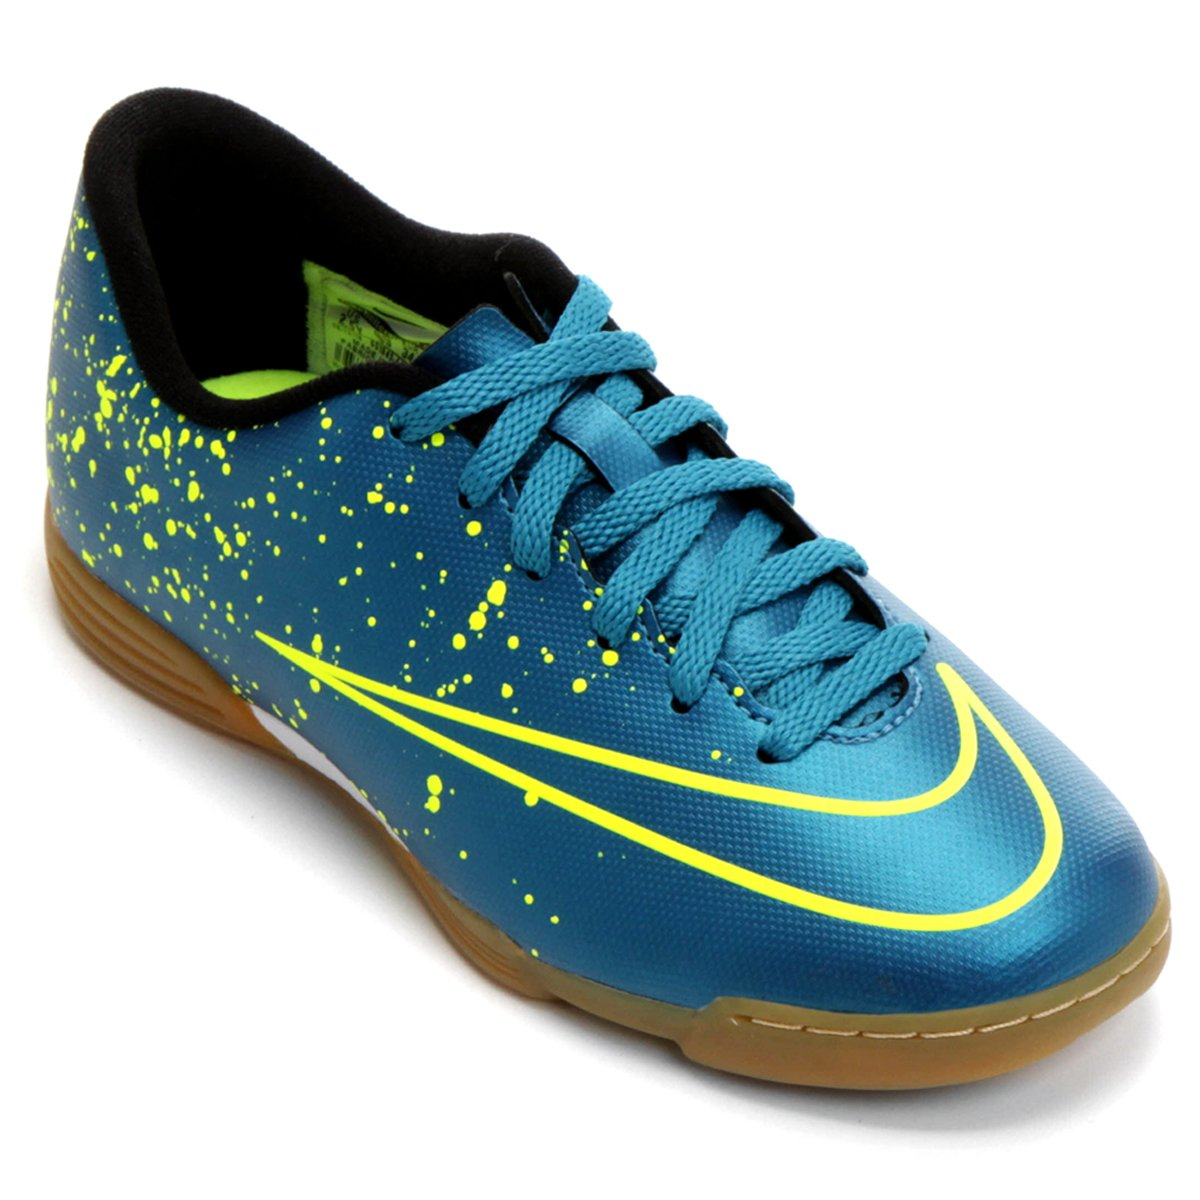 d1d3438c31 ... norway chuteira futsal infantil nike mercurial vortex 2 ic compre agora  netshoes 80460 7f844 ...